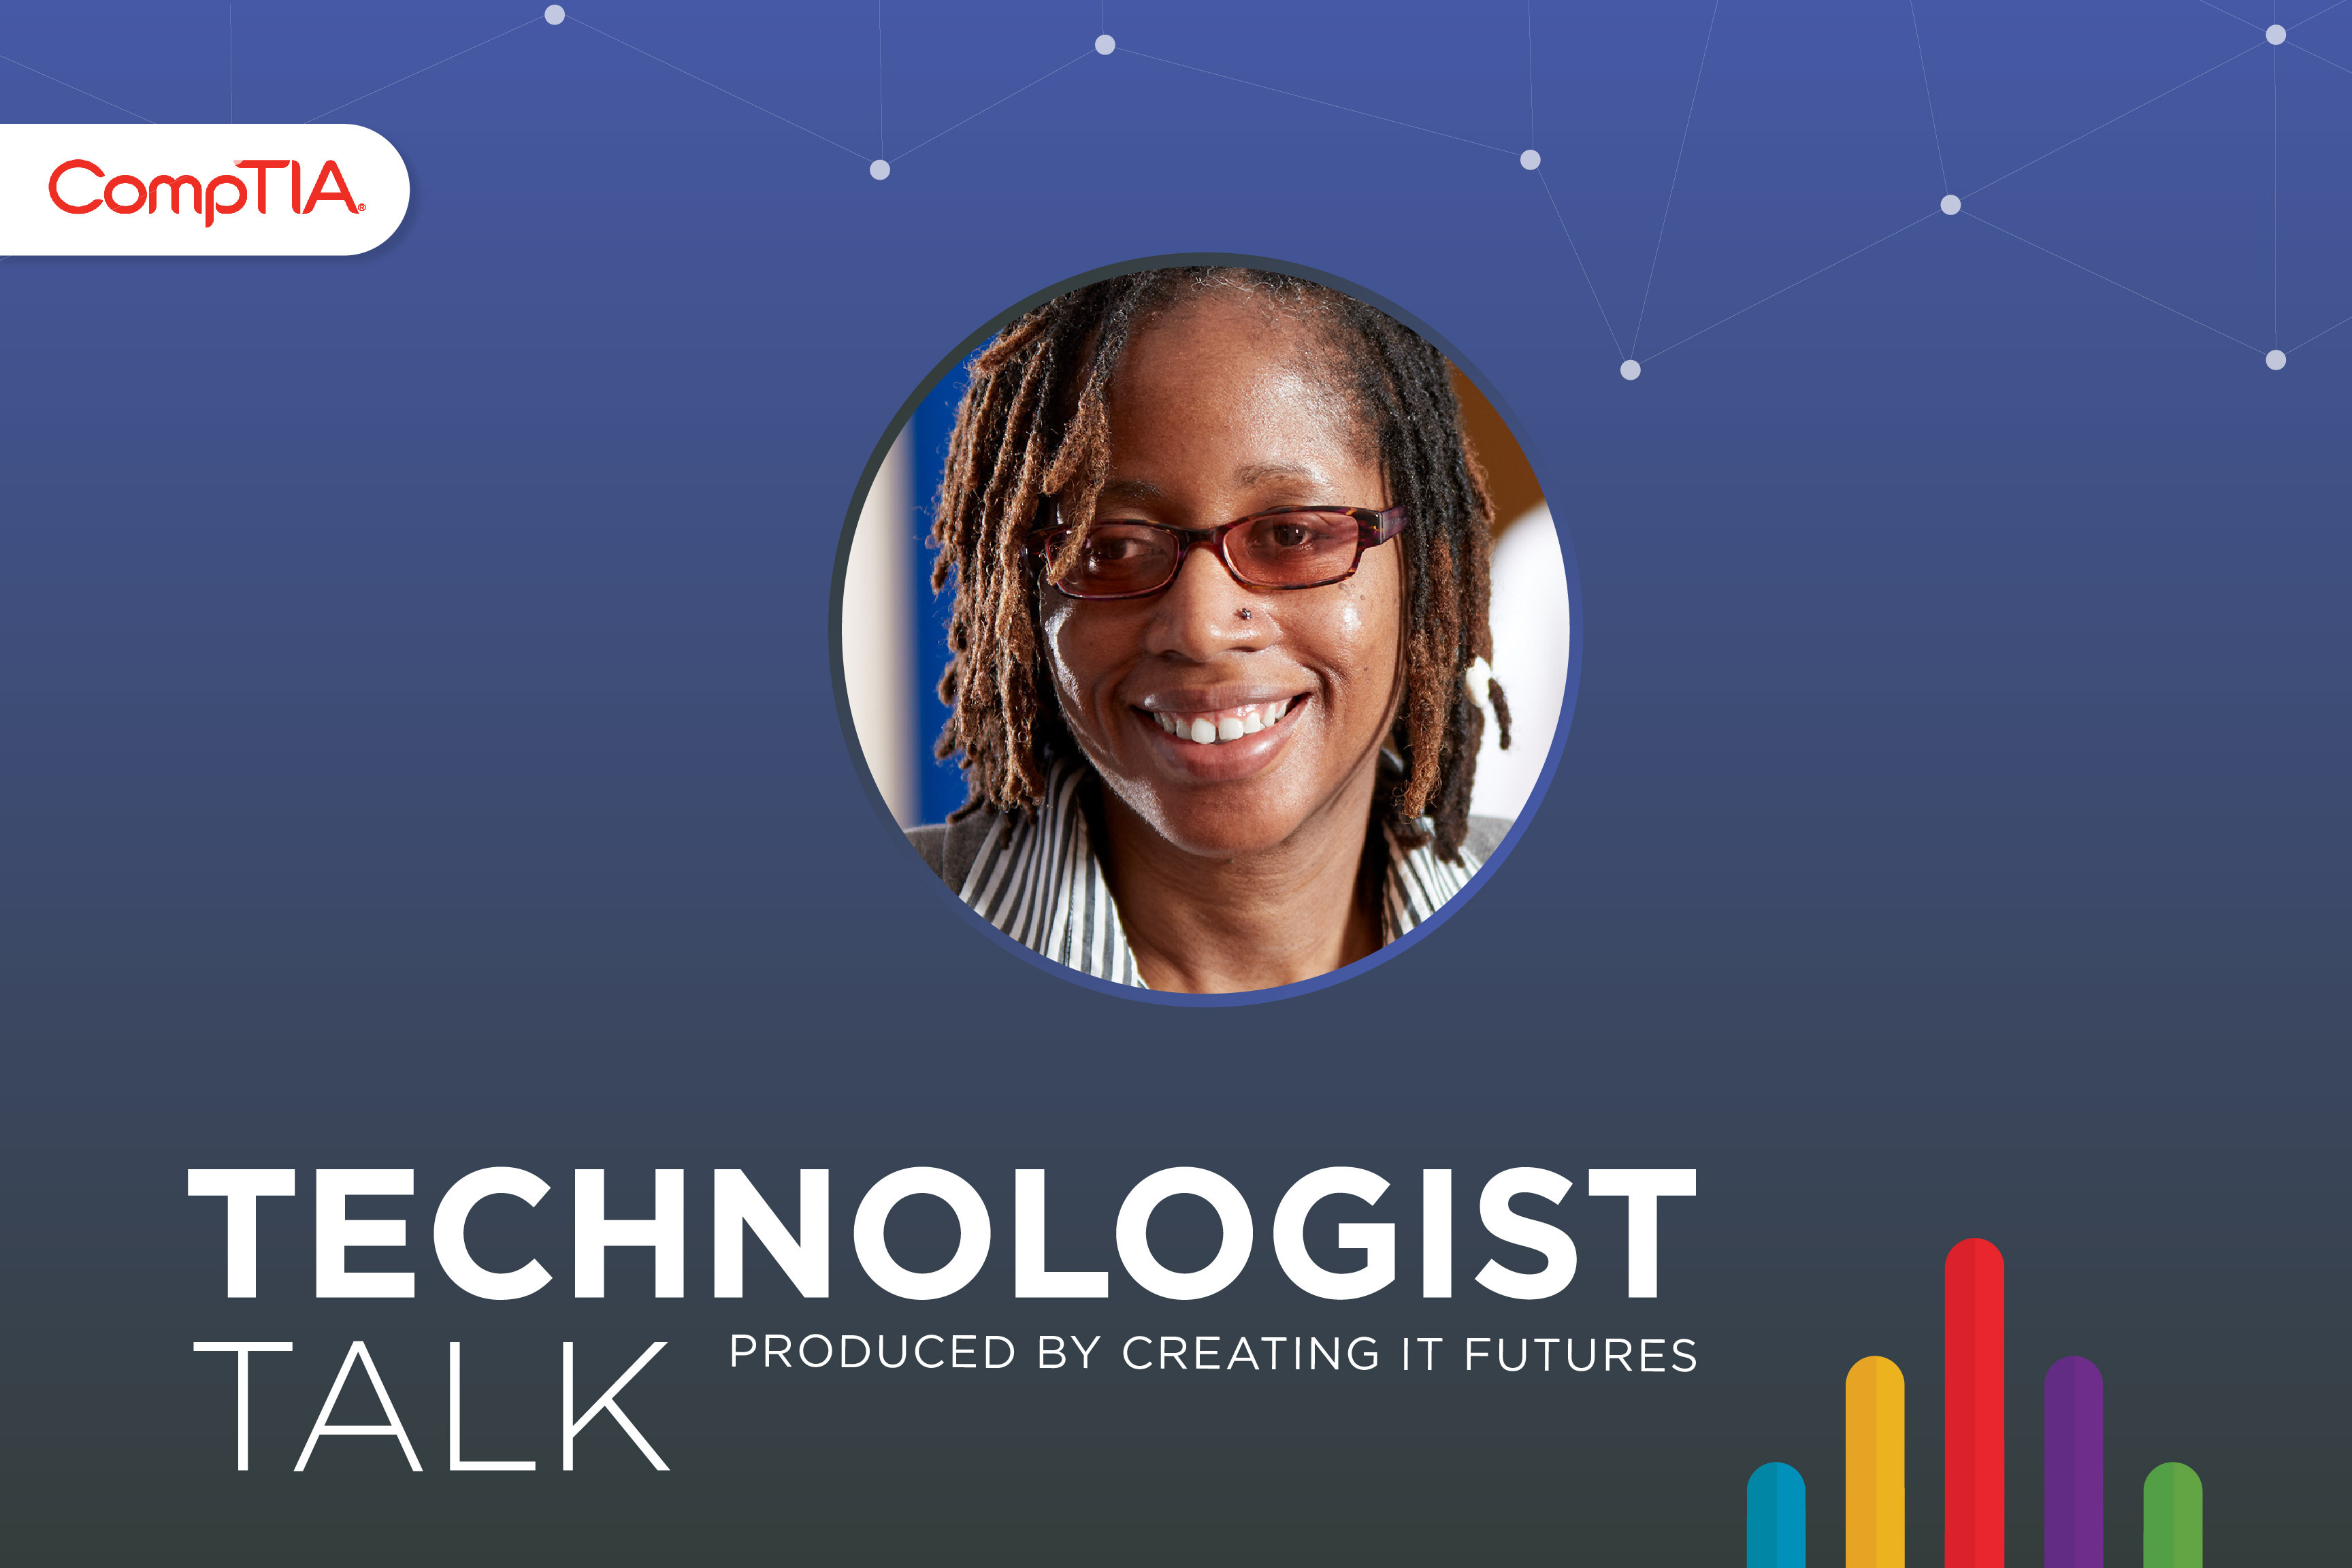 Angela Curtis on Technologist Talk